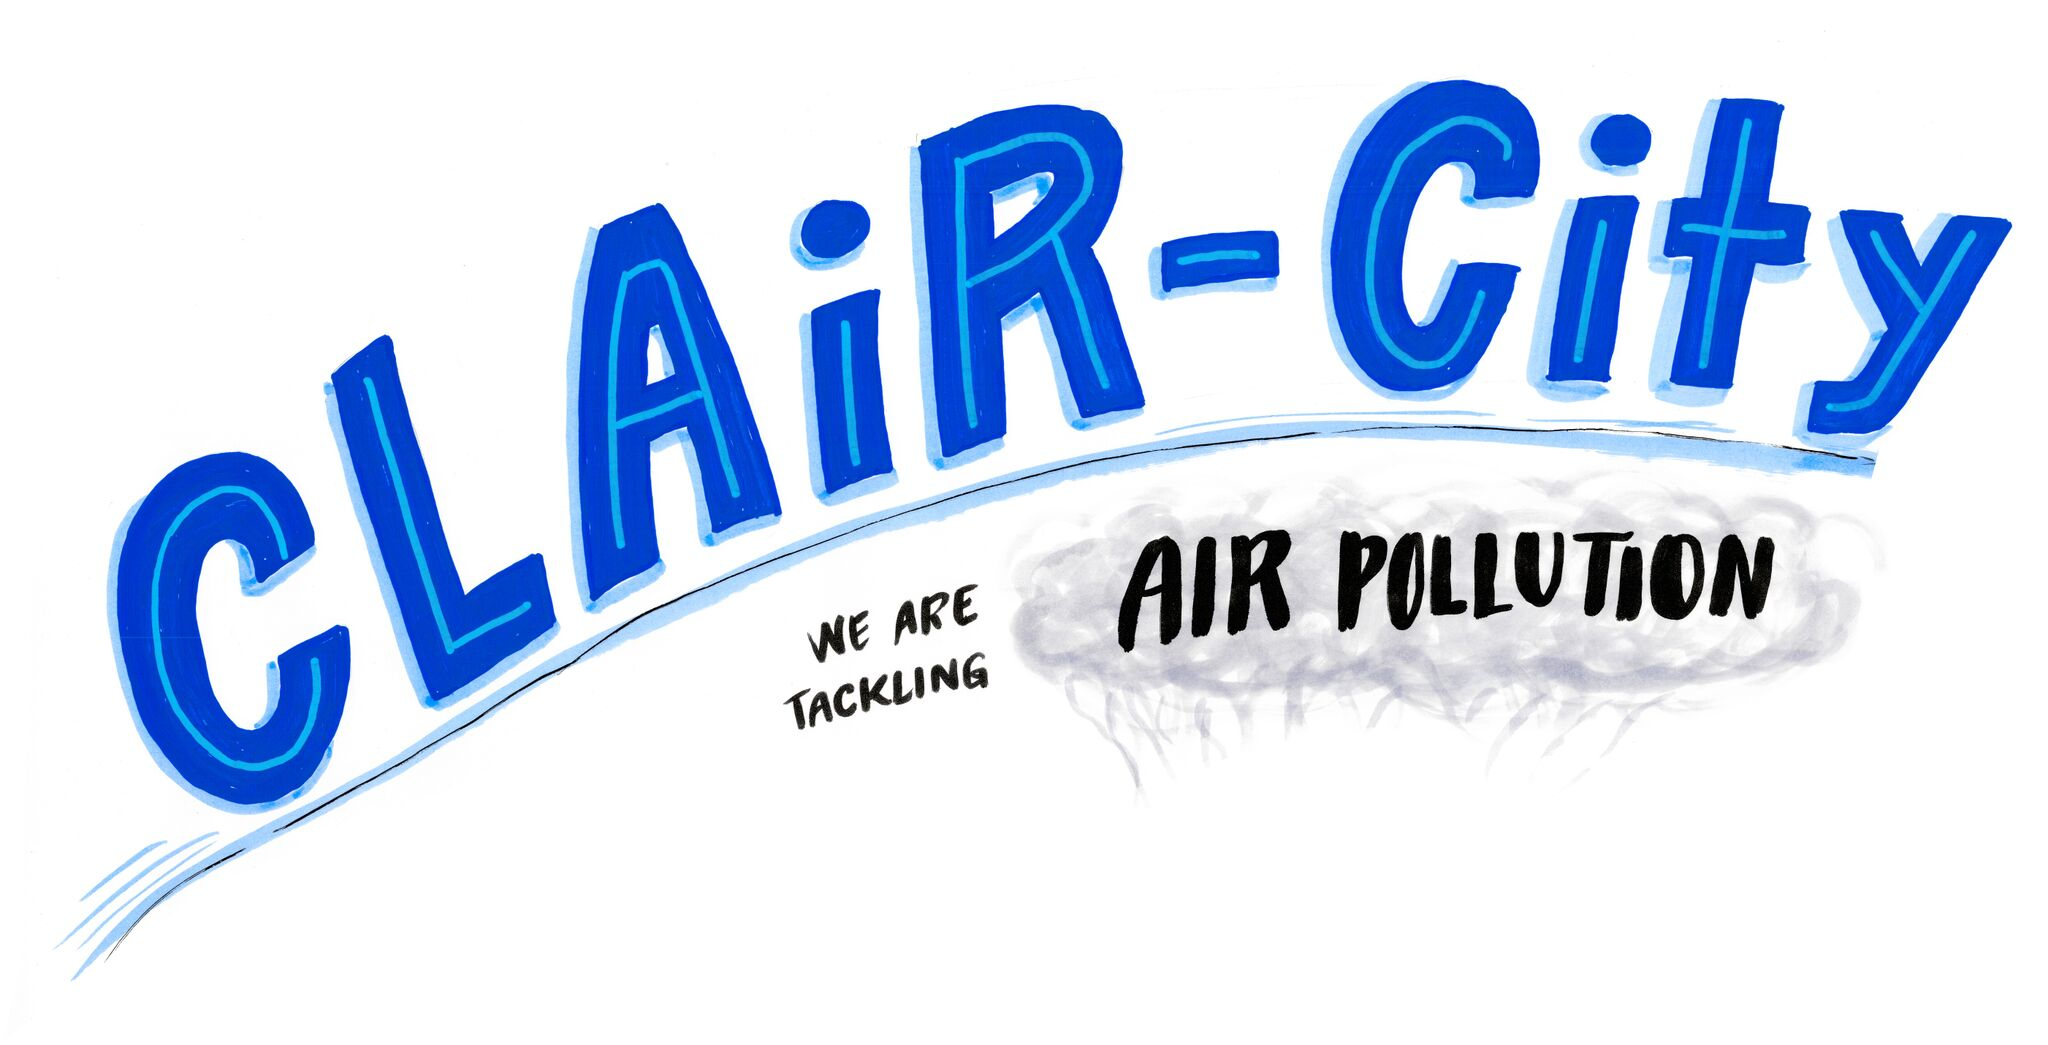 IWSN aligns with CLAiR-City – the largest citizen-led air pollution project in Europe